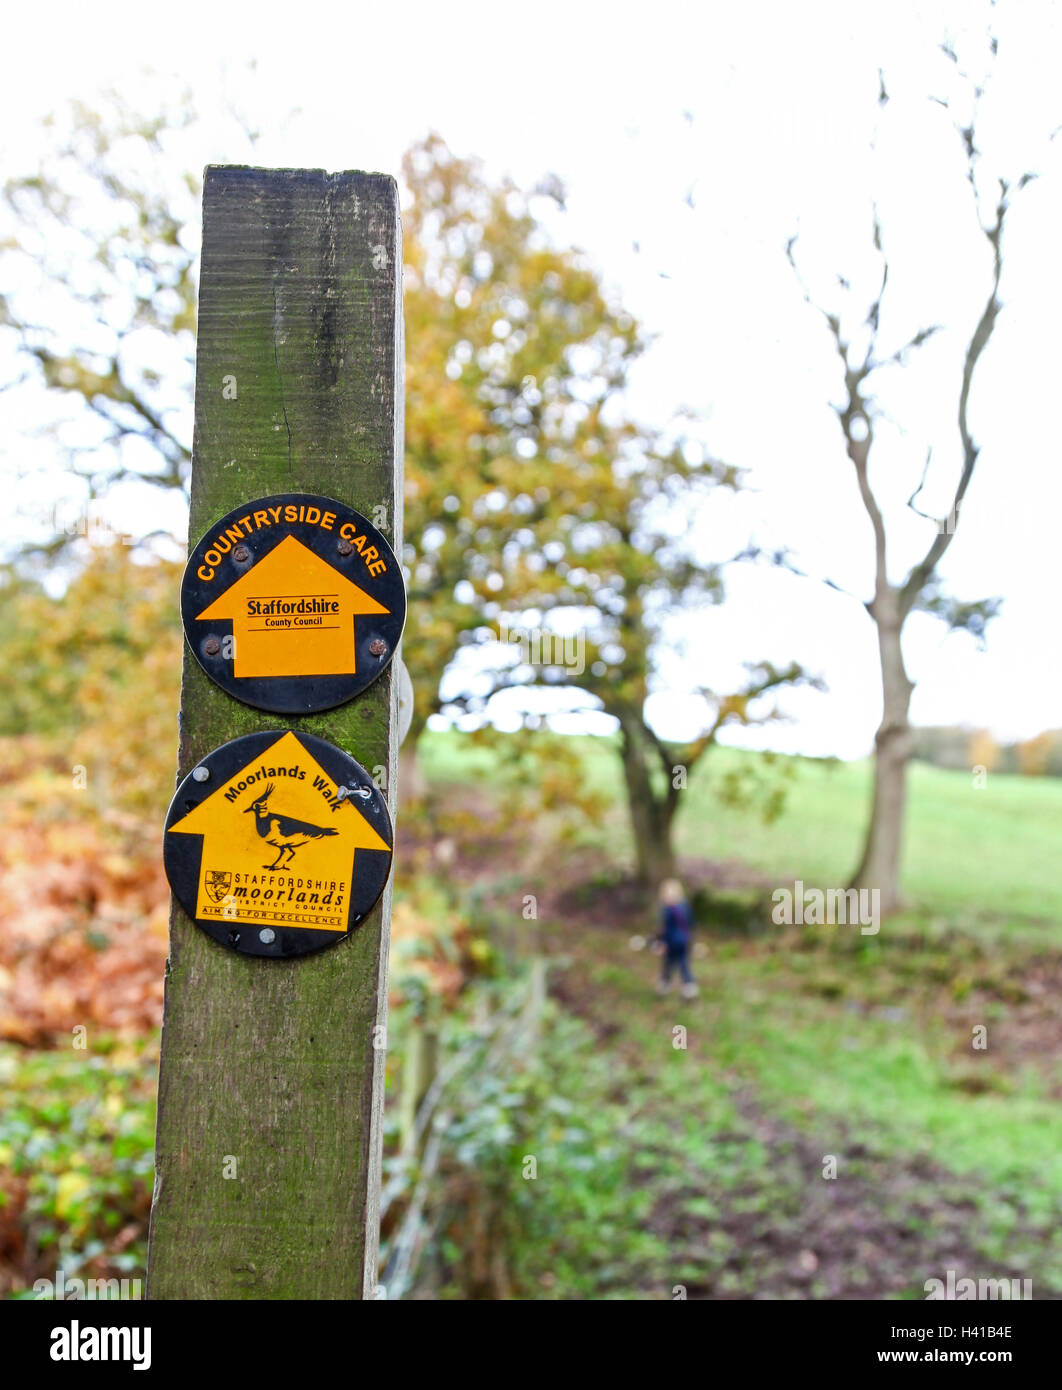 A woman walking on a local authority walk designed by Staffordshire Moorlands district council and Staffordshire - Stock Image